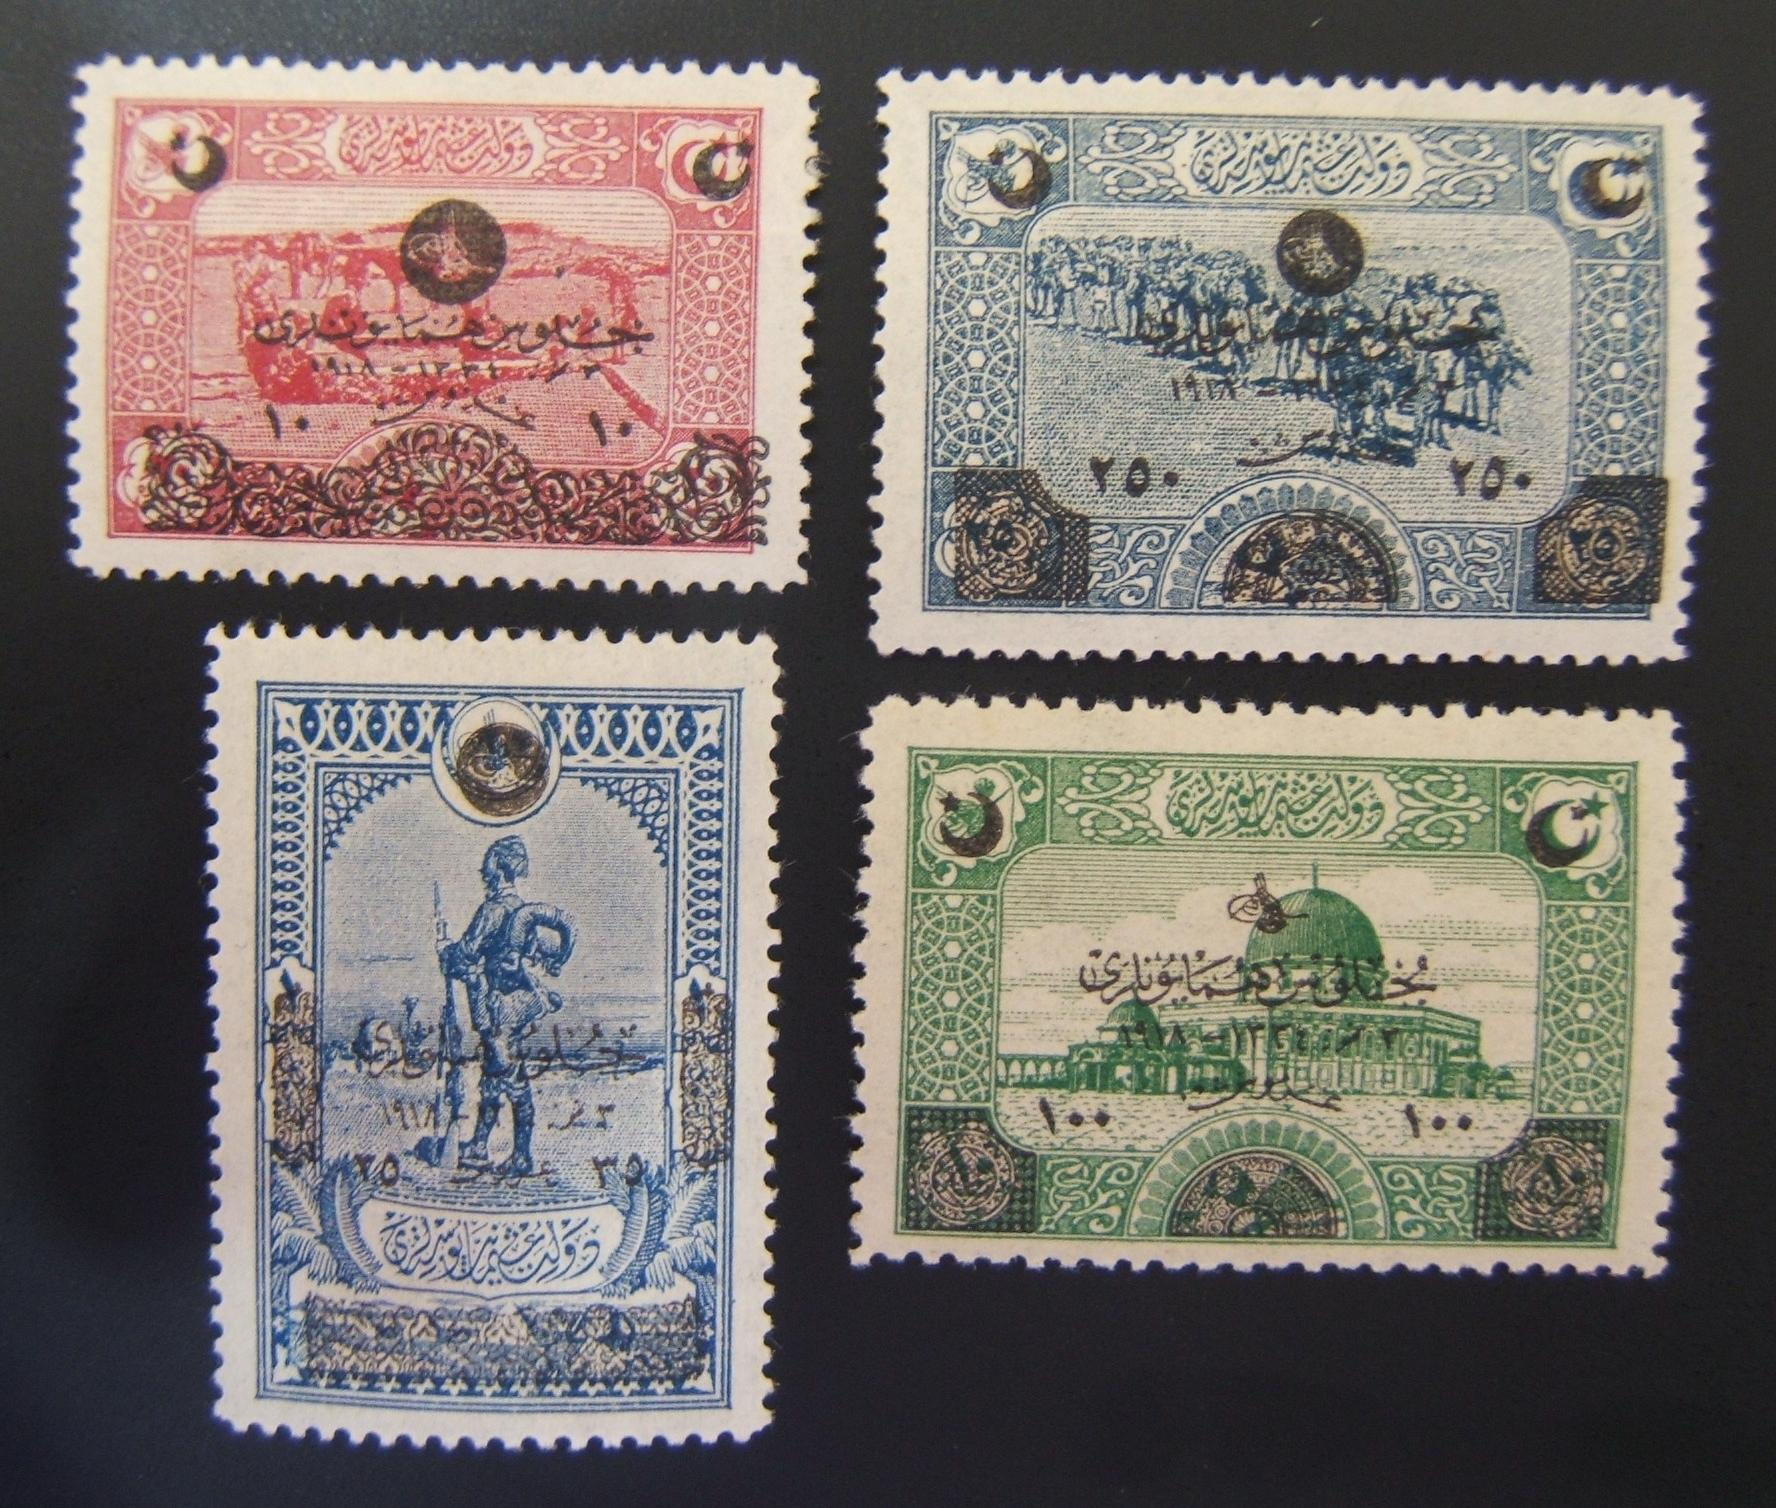 Ottoman x4 stamps 1919 Sultan's Accession to Throne, mint-hinged